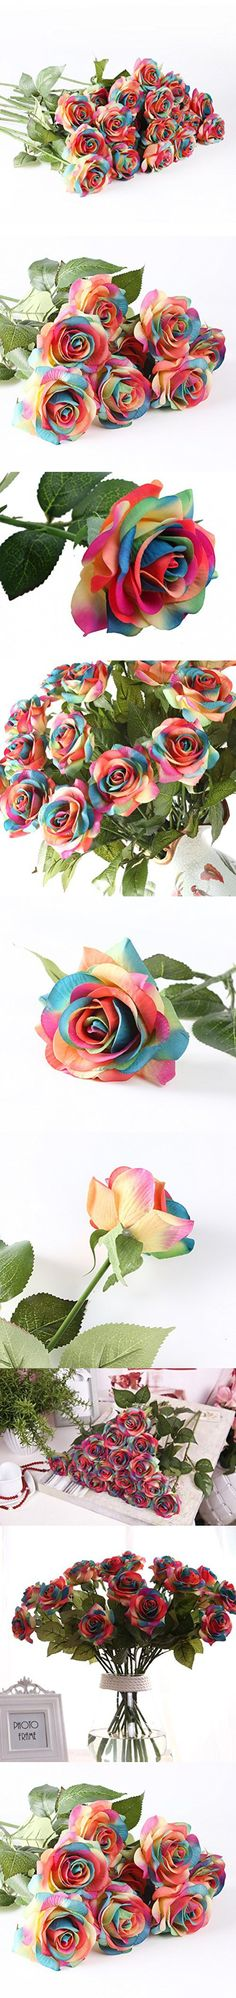 DIY Artificial Silk Craft Flowers for Bouquets, Weddings, Wreaths, & Crafts, Single Closed Rose Bud Stem 1 Bunch of 12pcs (Rainbow)